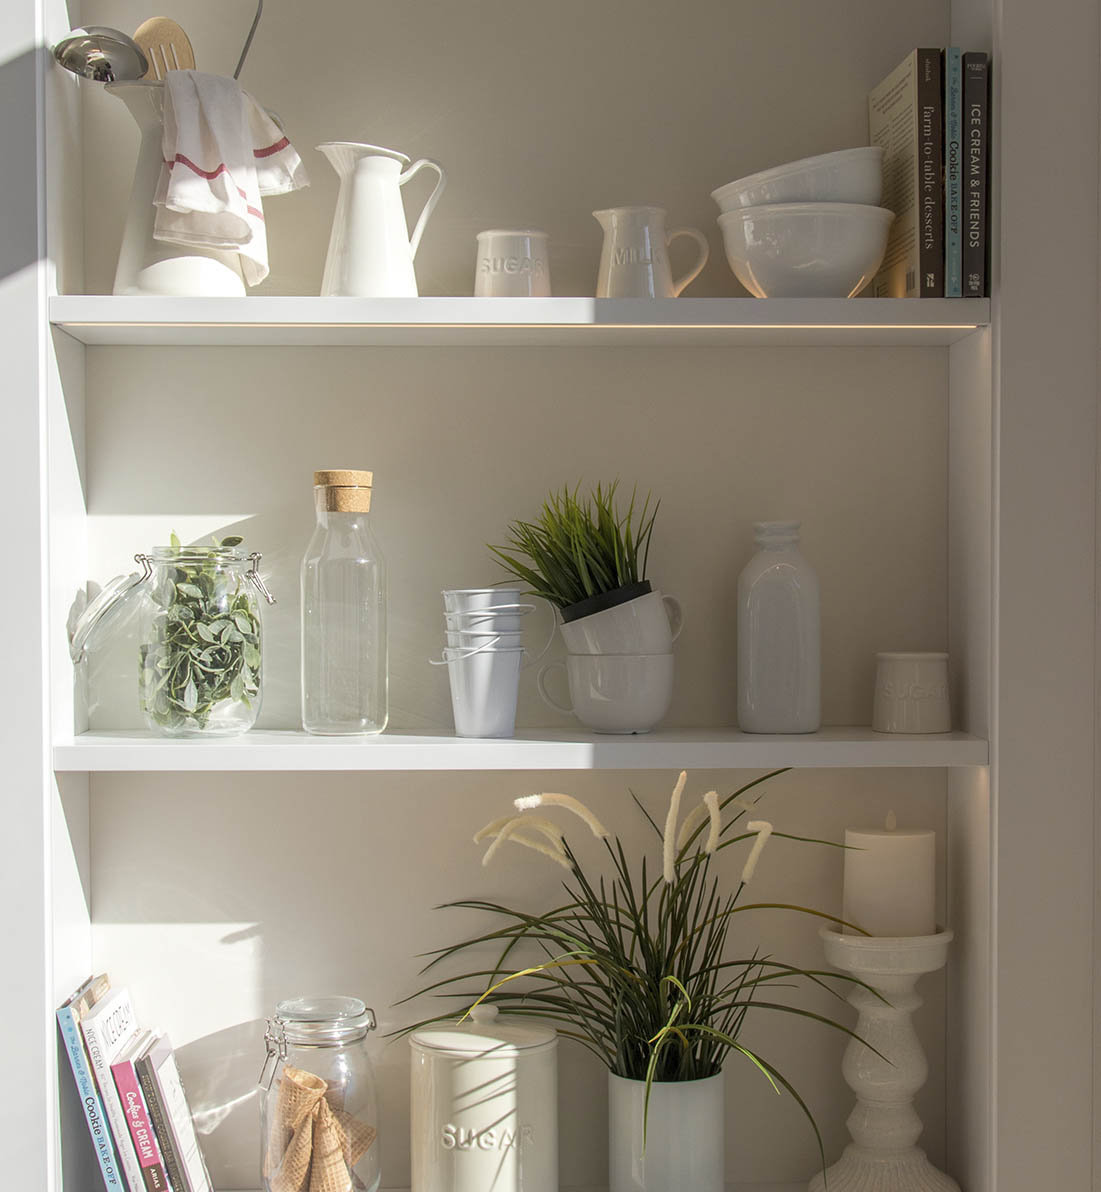 Shelves with neatly stacked books, dishes, and plants